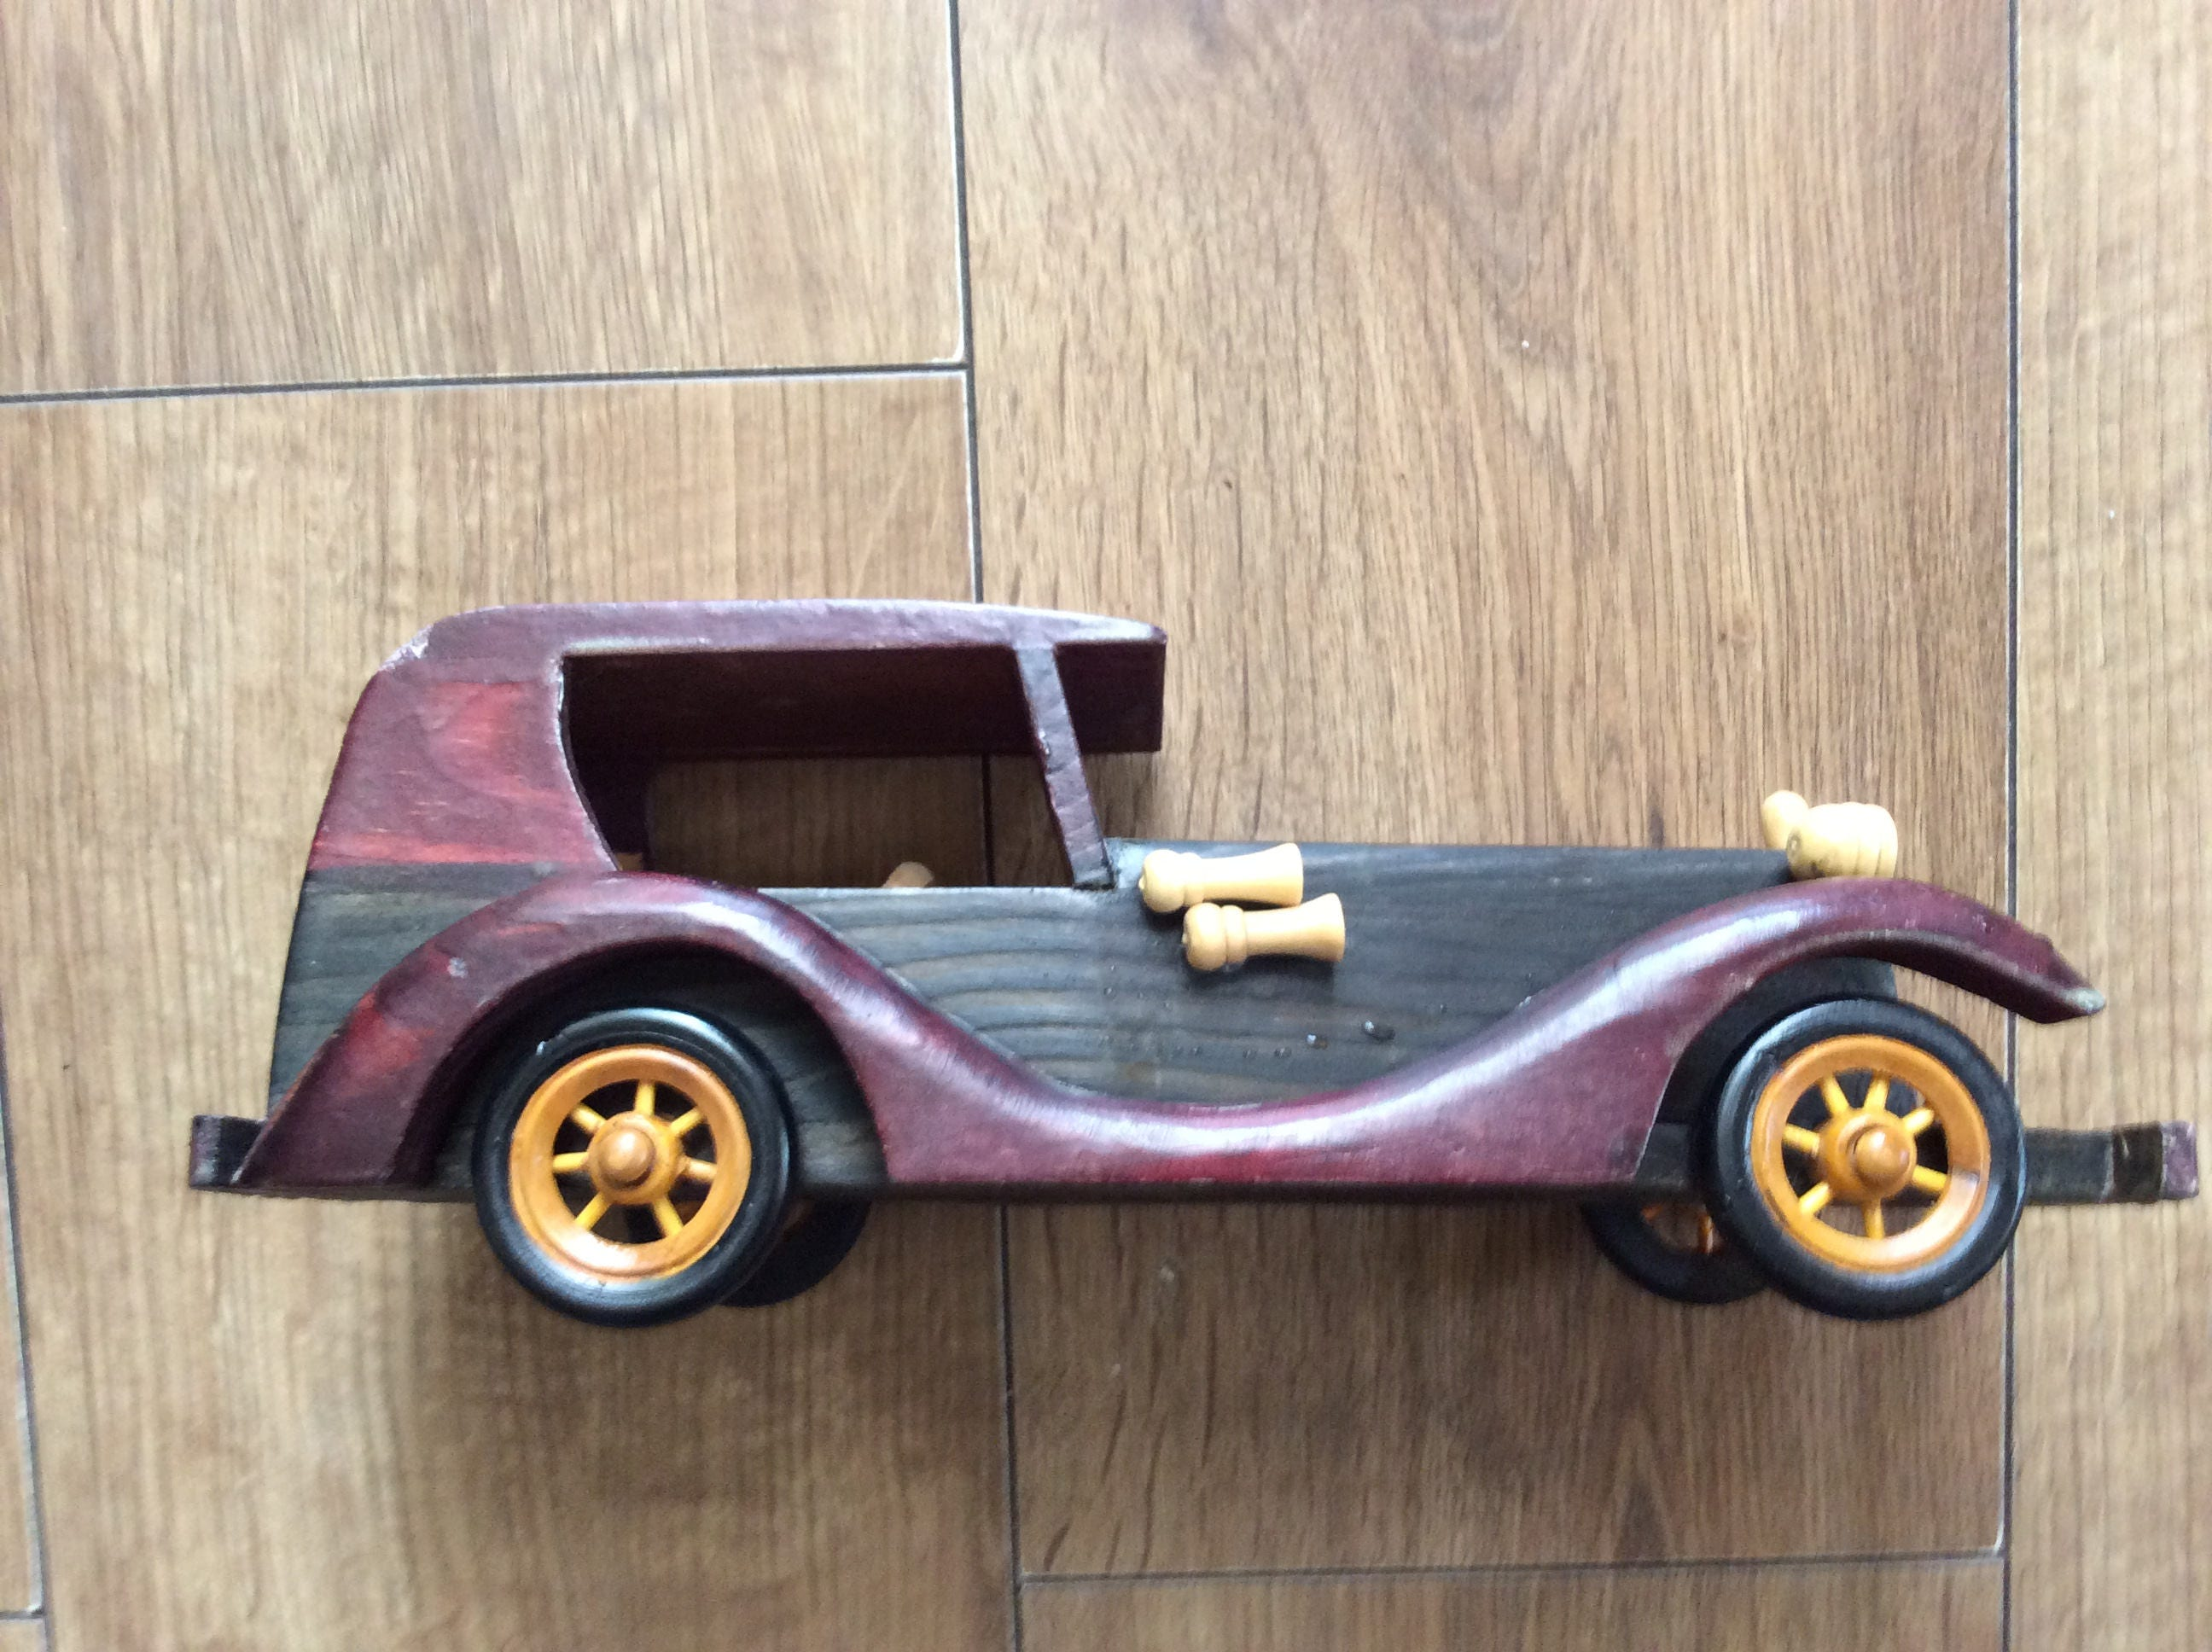 Hand crafted toy car